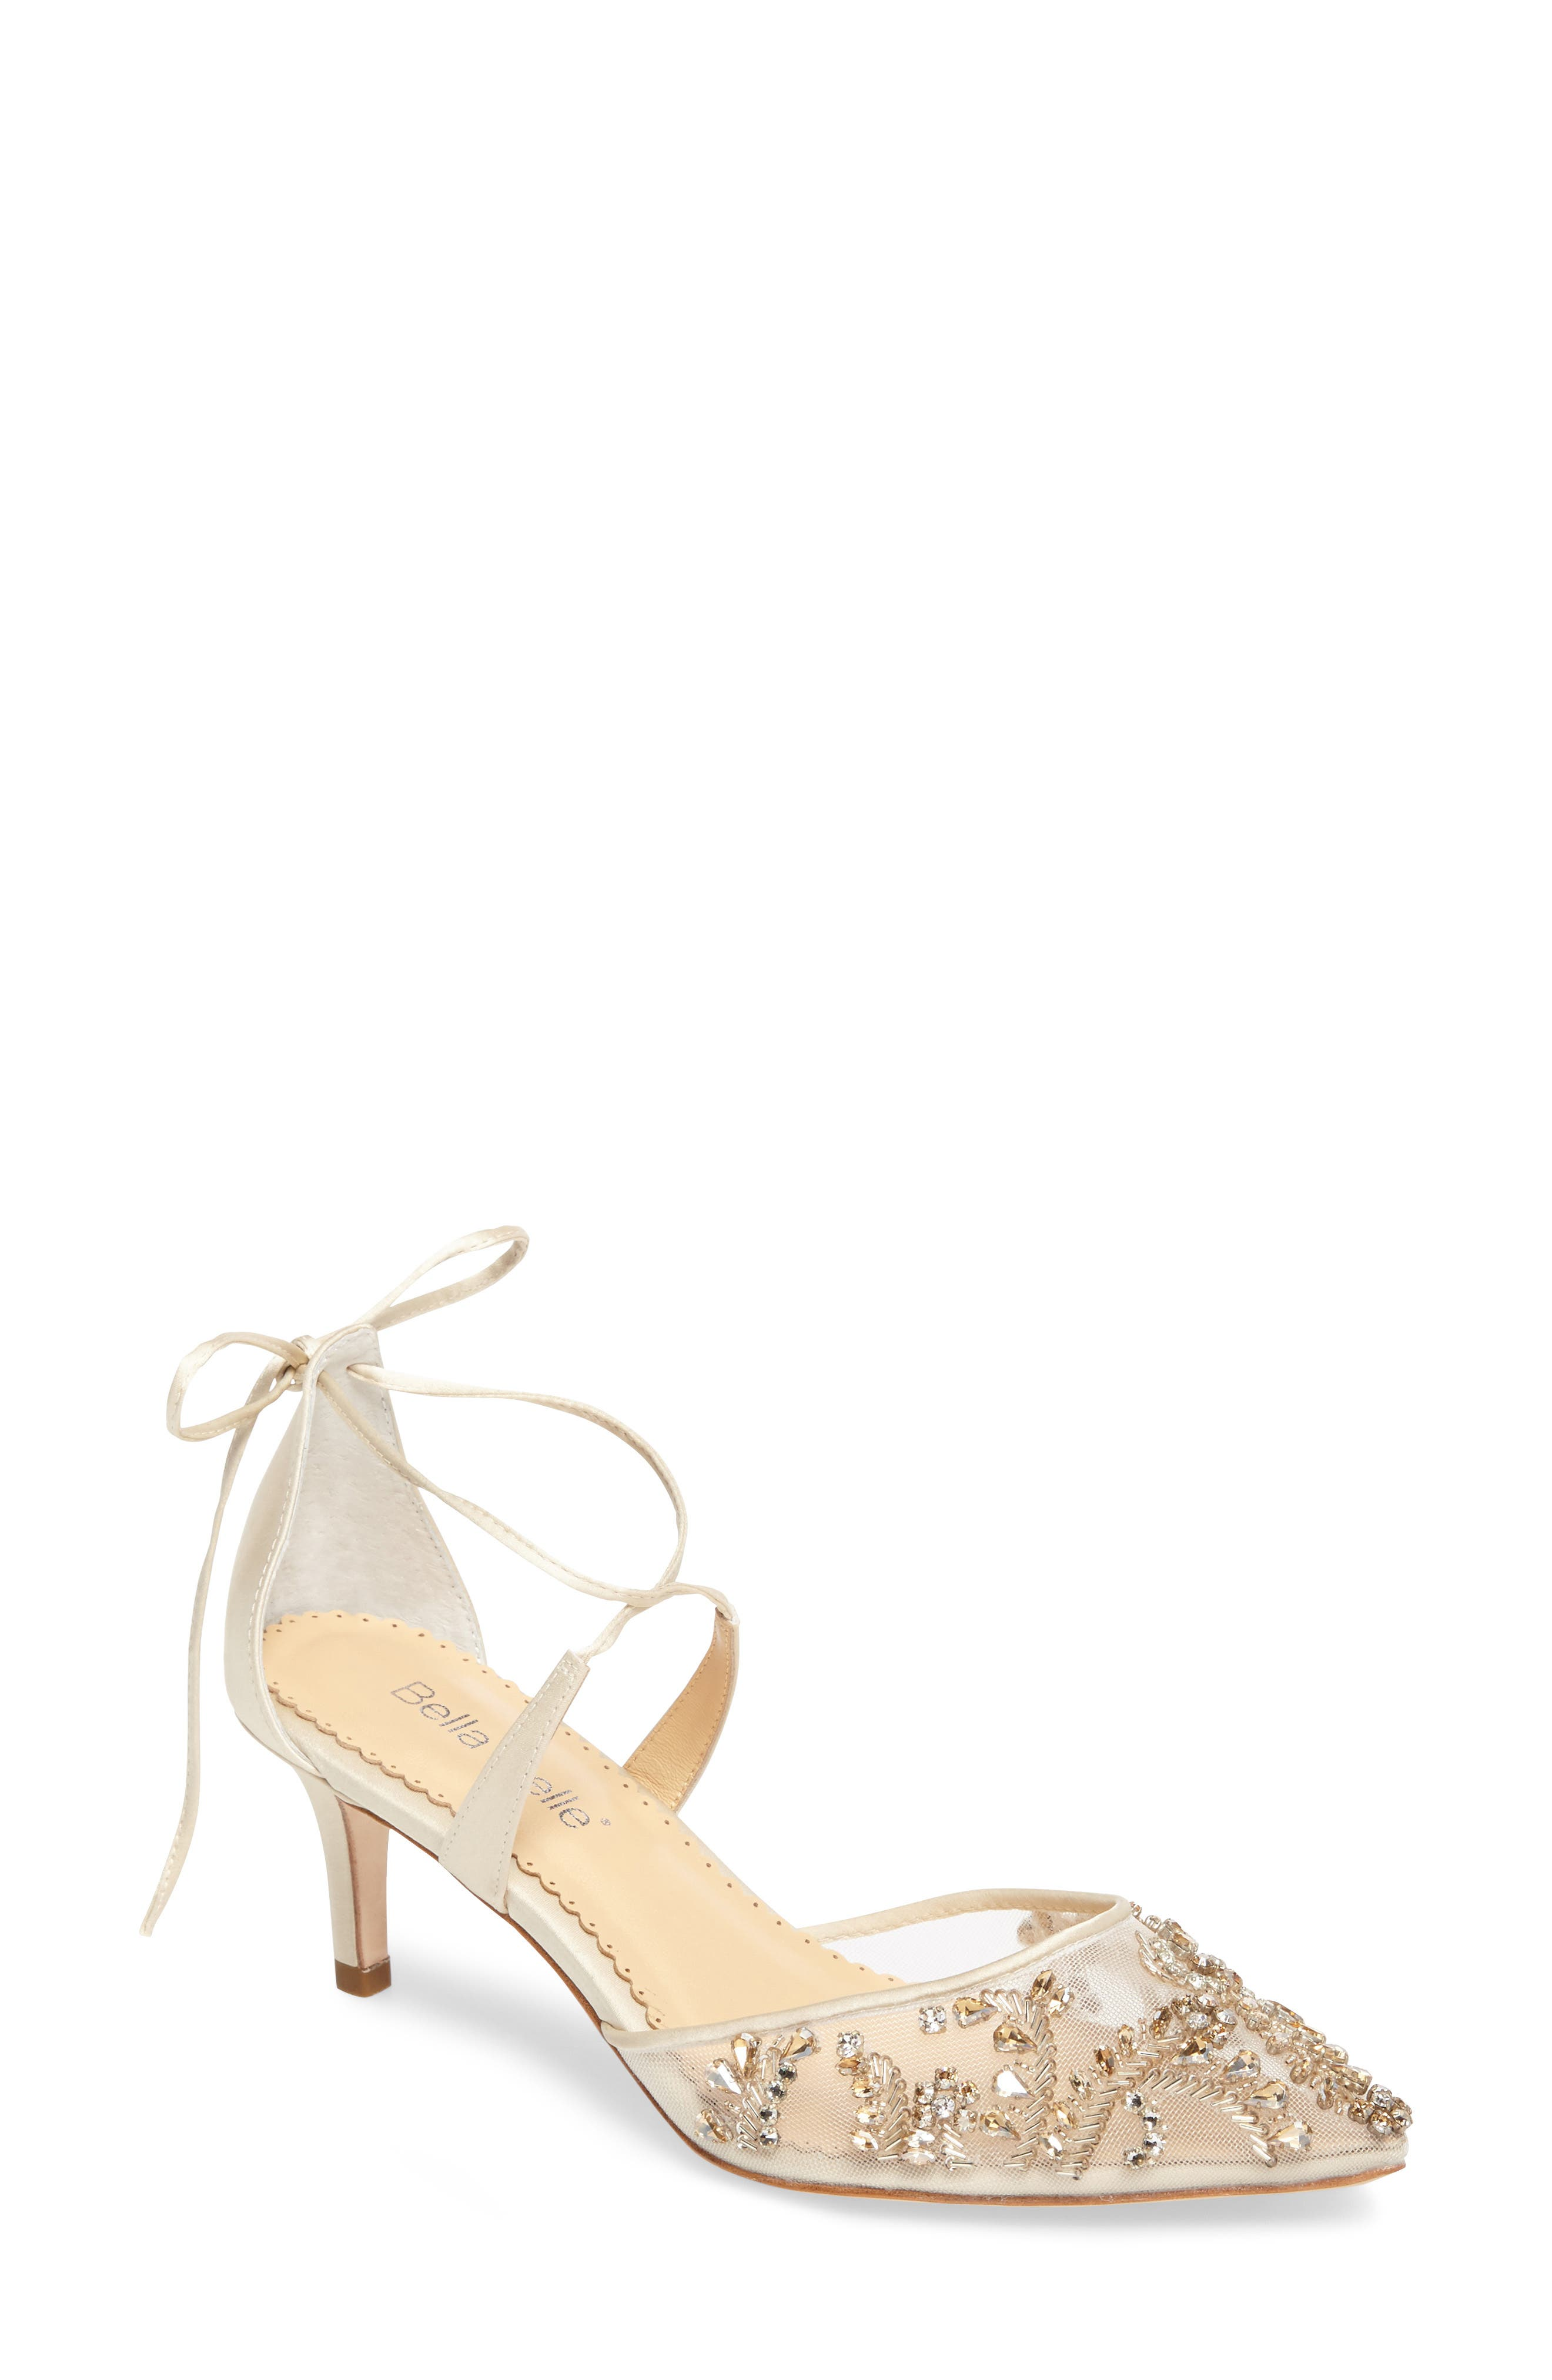 Frances Embellished Kitten Heel Pump,                             Main thumbnail 1, color,                             CHAMPAGNE SILK